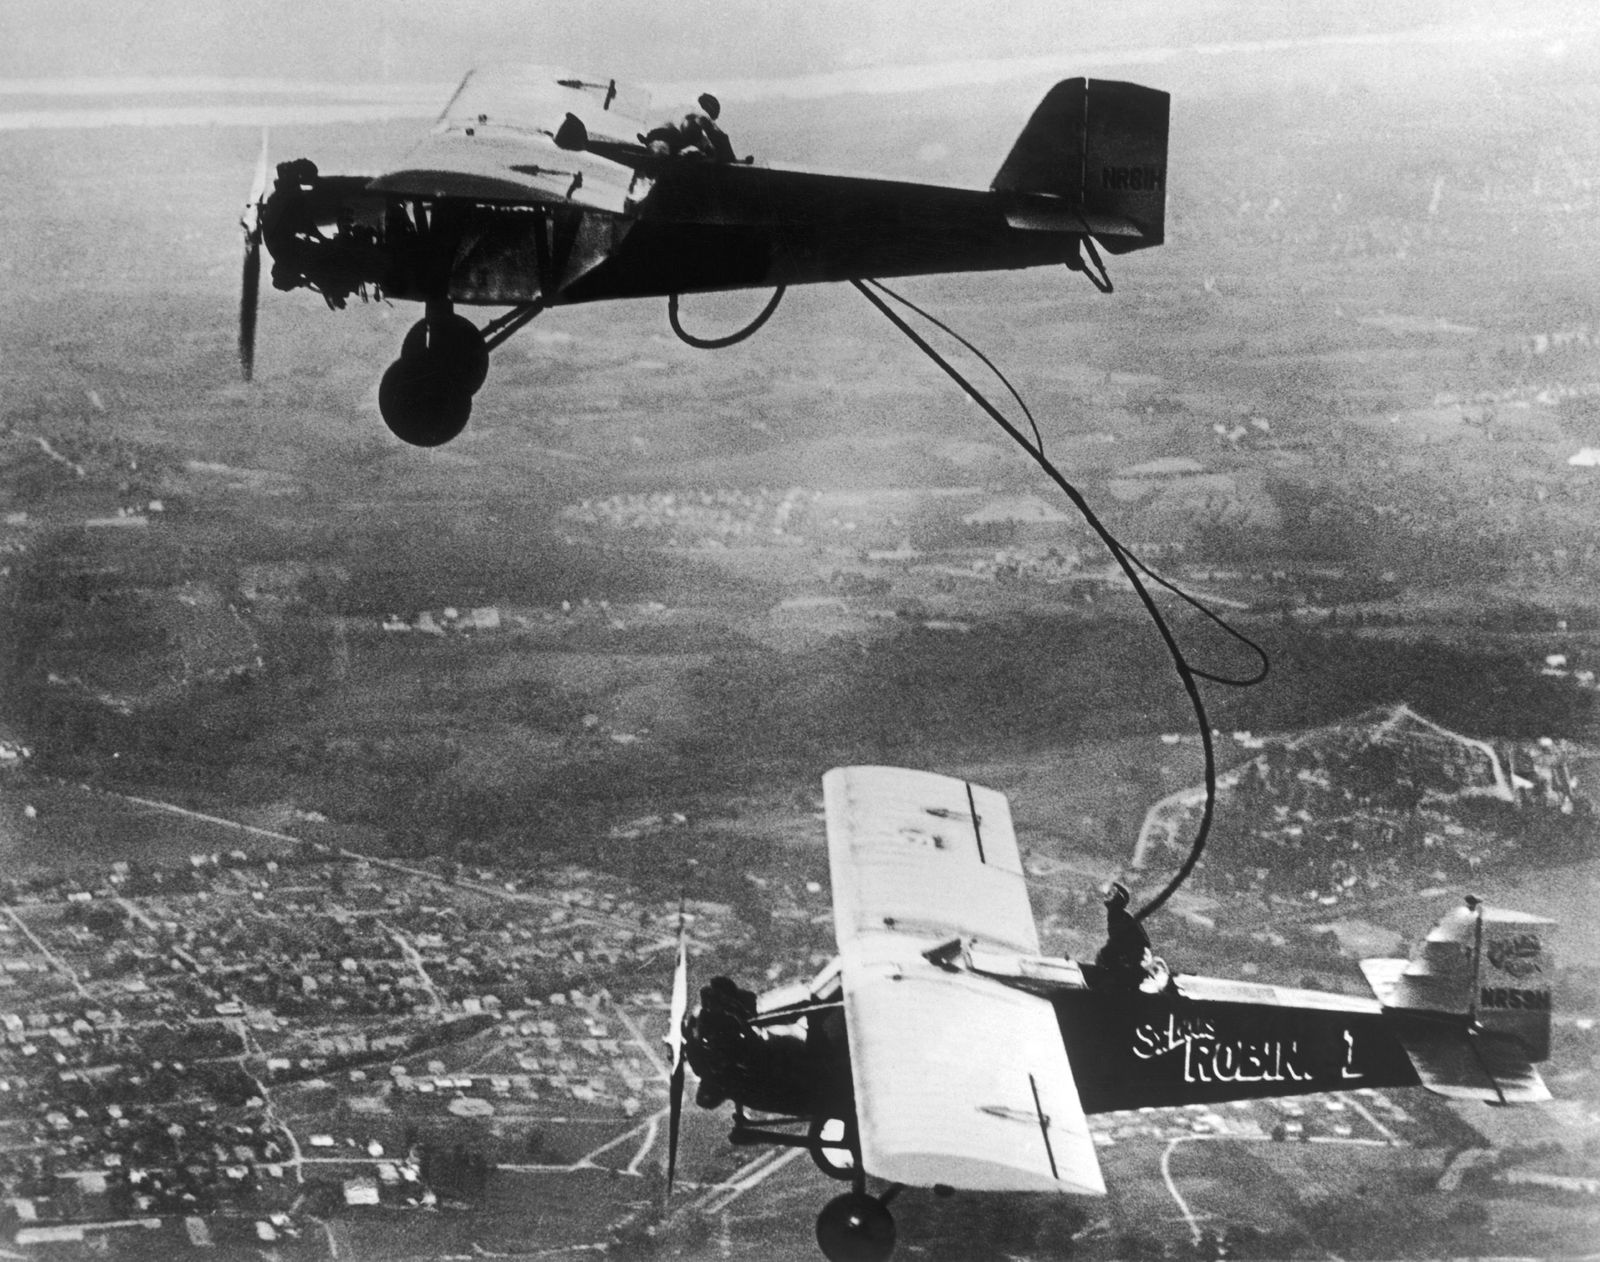 Supplying In-Flight During An Aerial Endurance Event In 1929